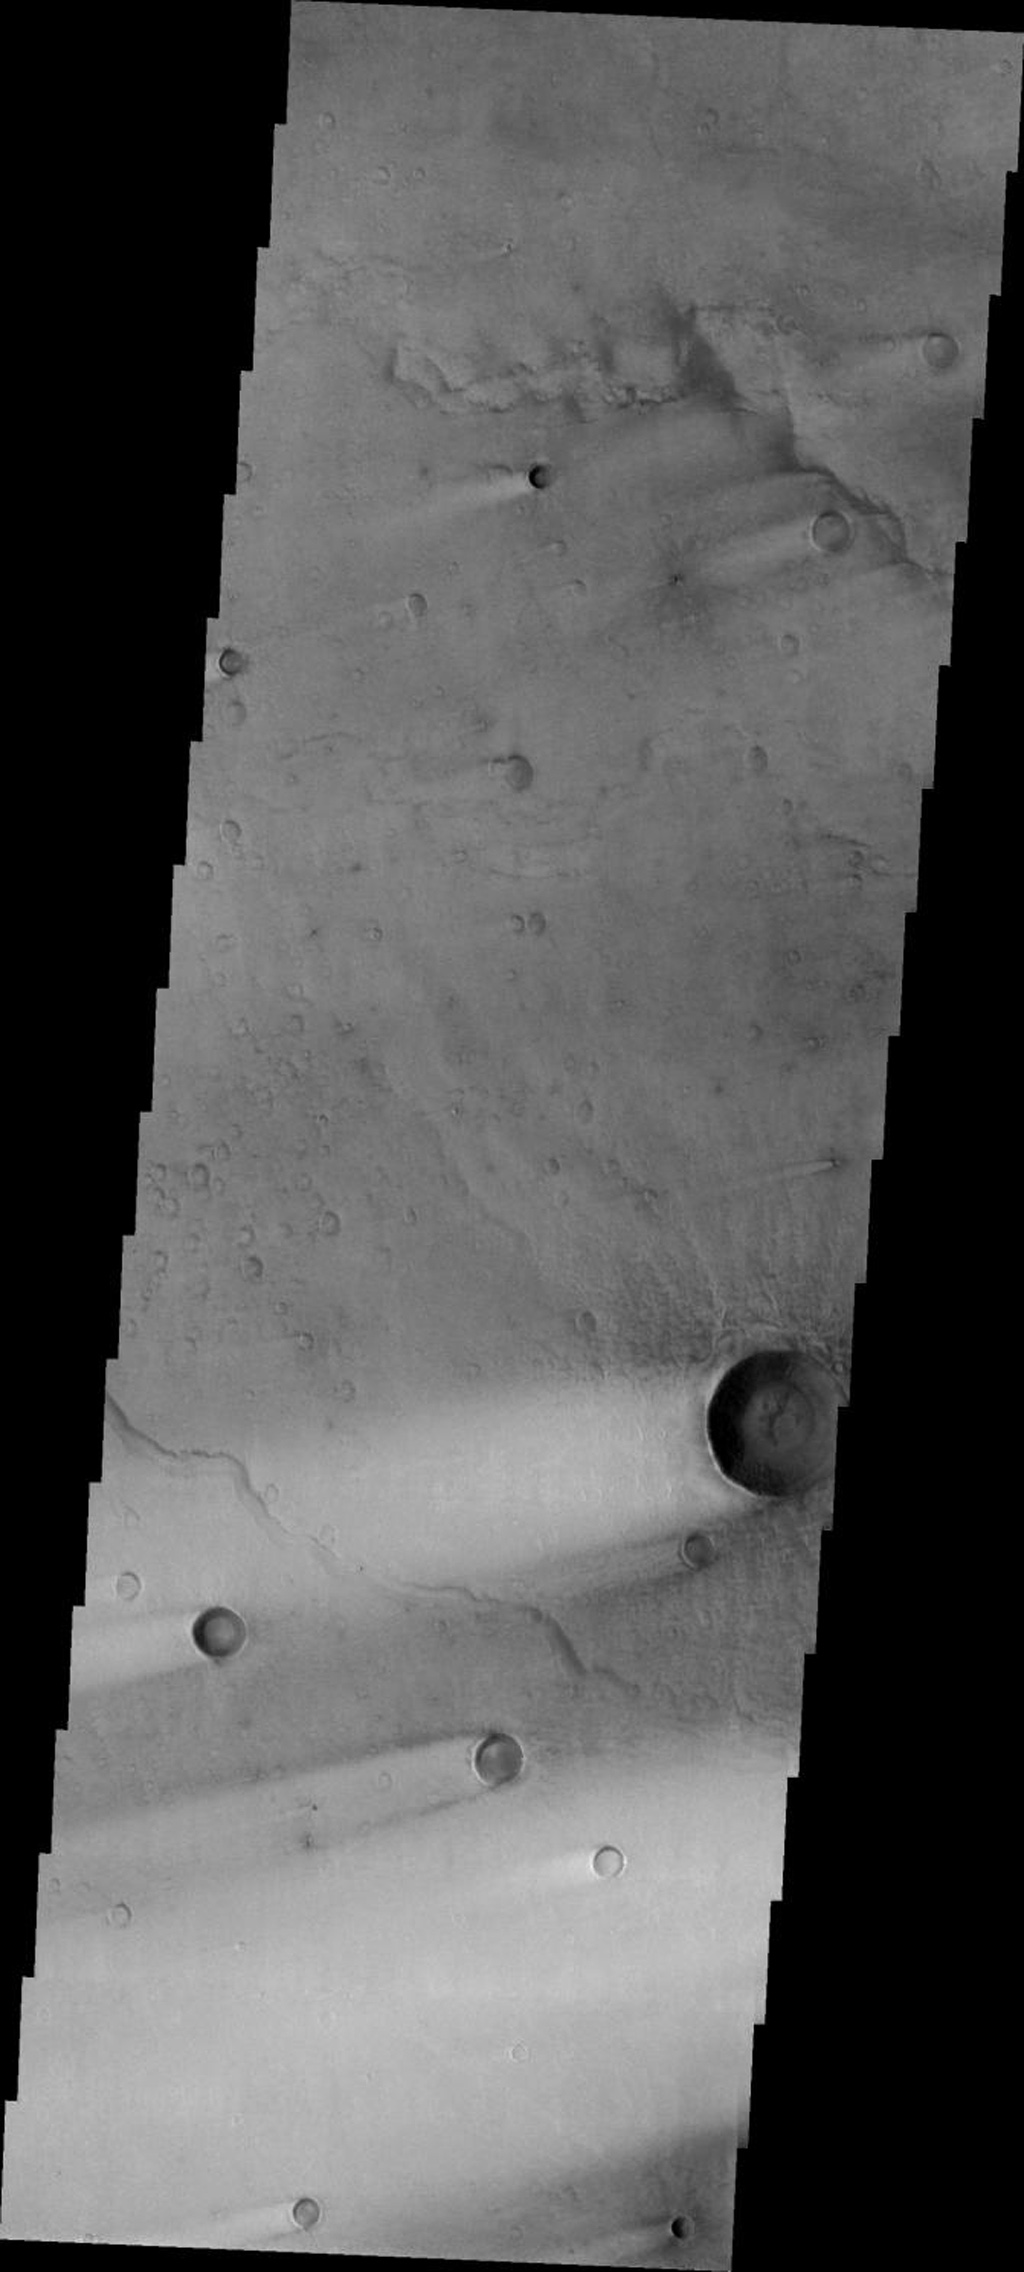 This image released on July 12, 2004 from NASA's 2001 Mars Odyssey shows windstreaks are features caused by the interaction of wind and topographic landforms such as raised rims and bowls of impact craters on Mars.